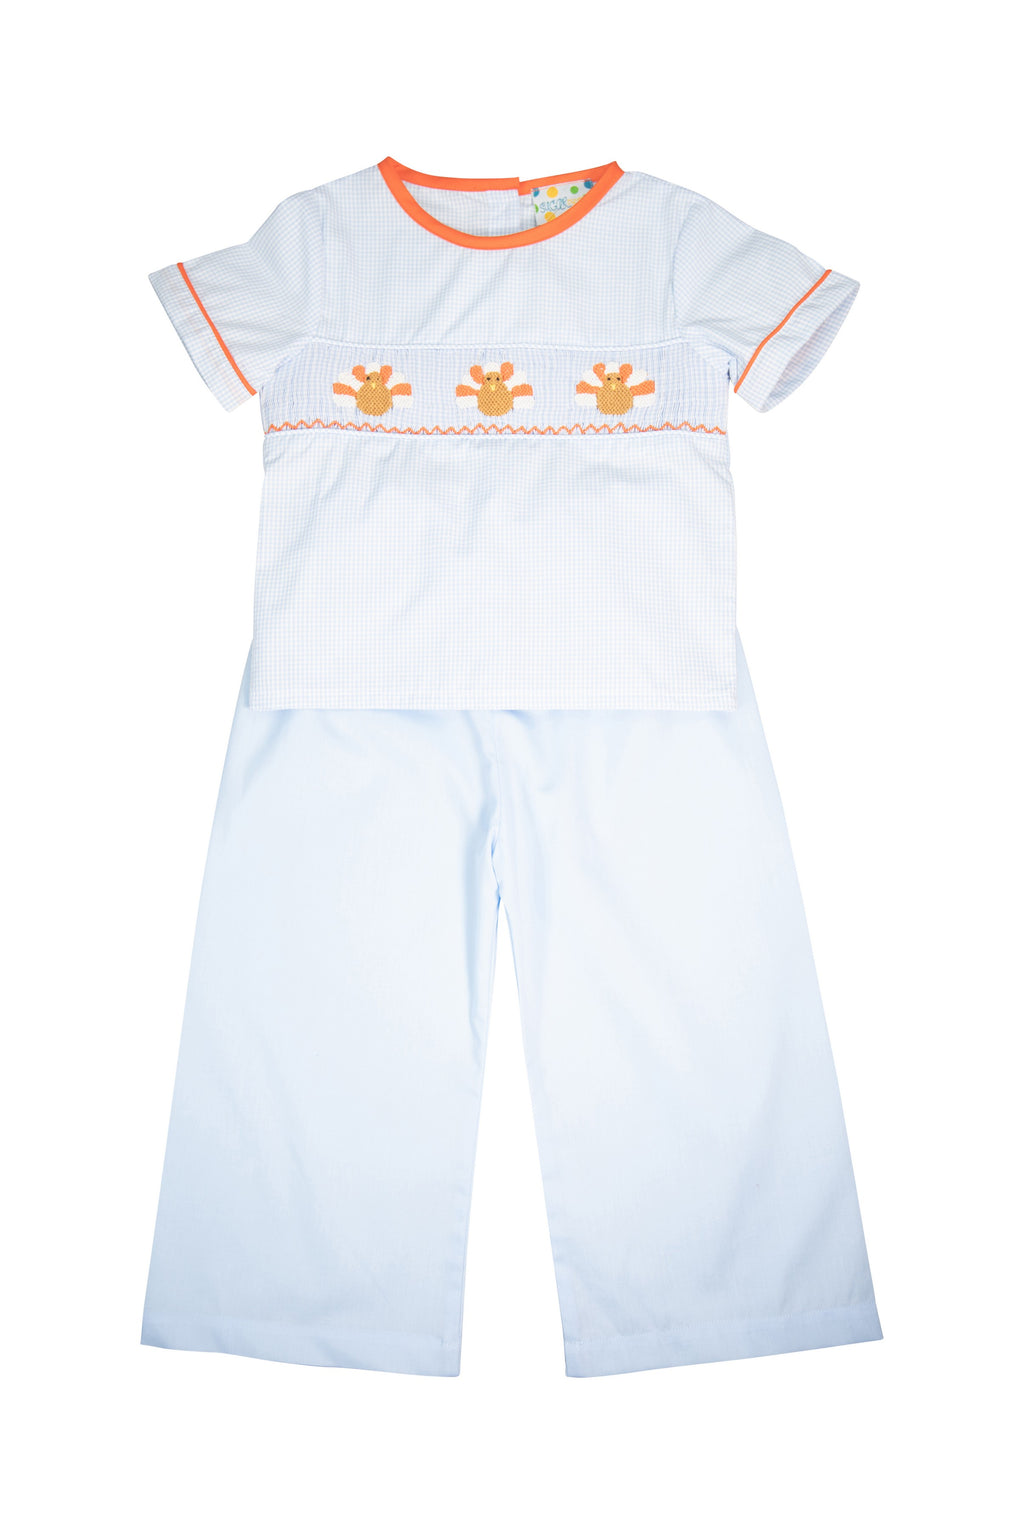 Boys Blue Smocked Turkey Pant Set